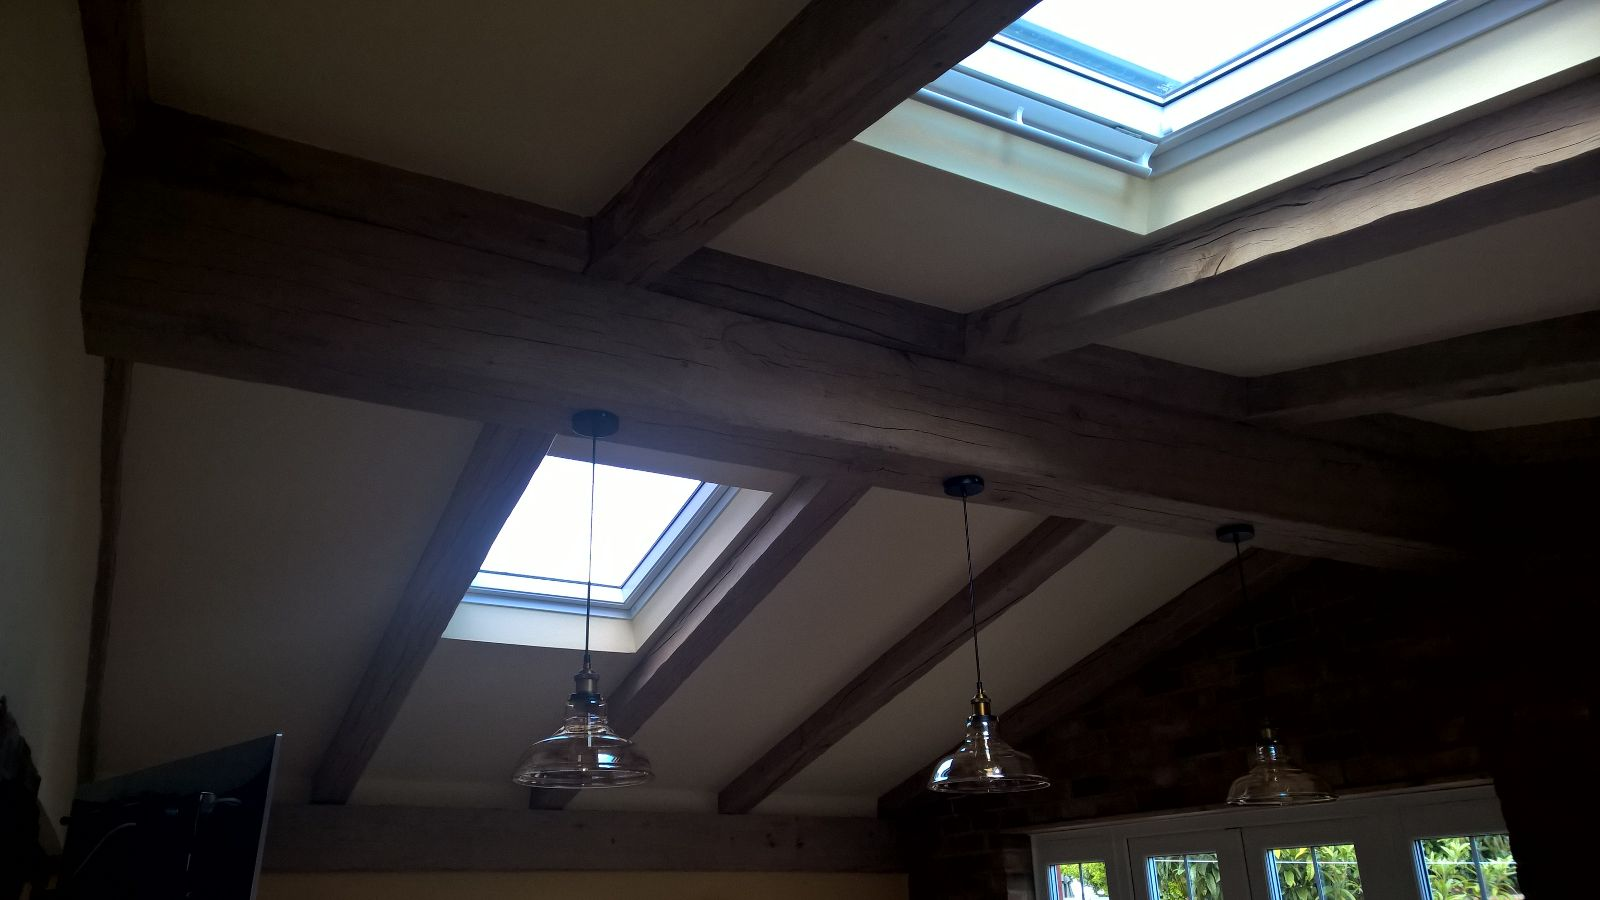 The same section of the ceiling finished with the covers removed. The oak looks stunning